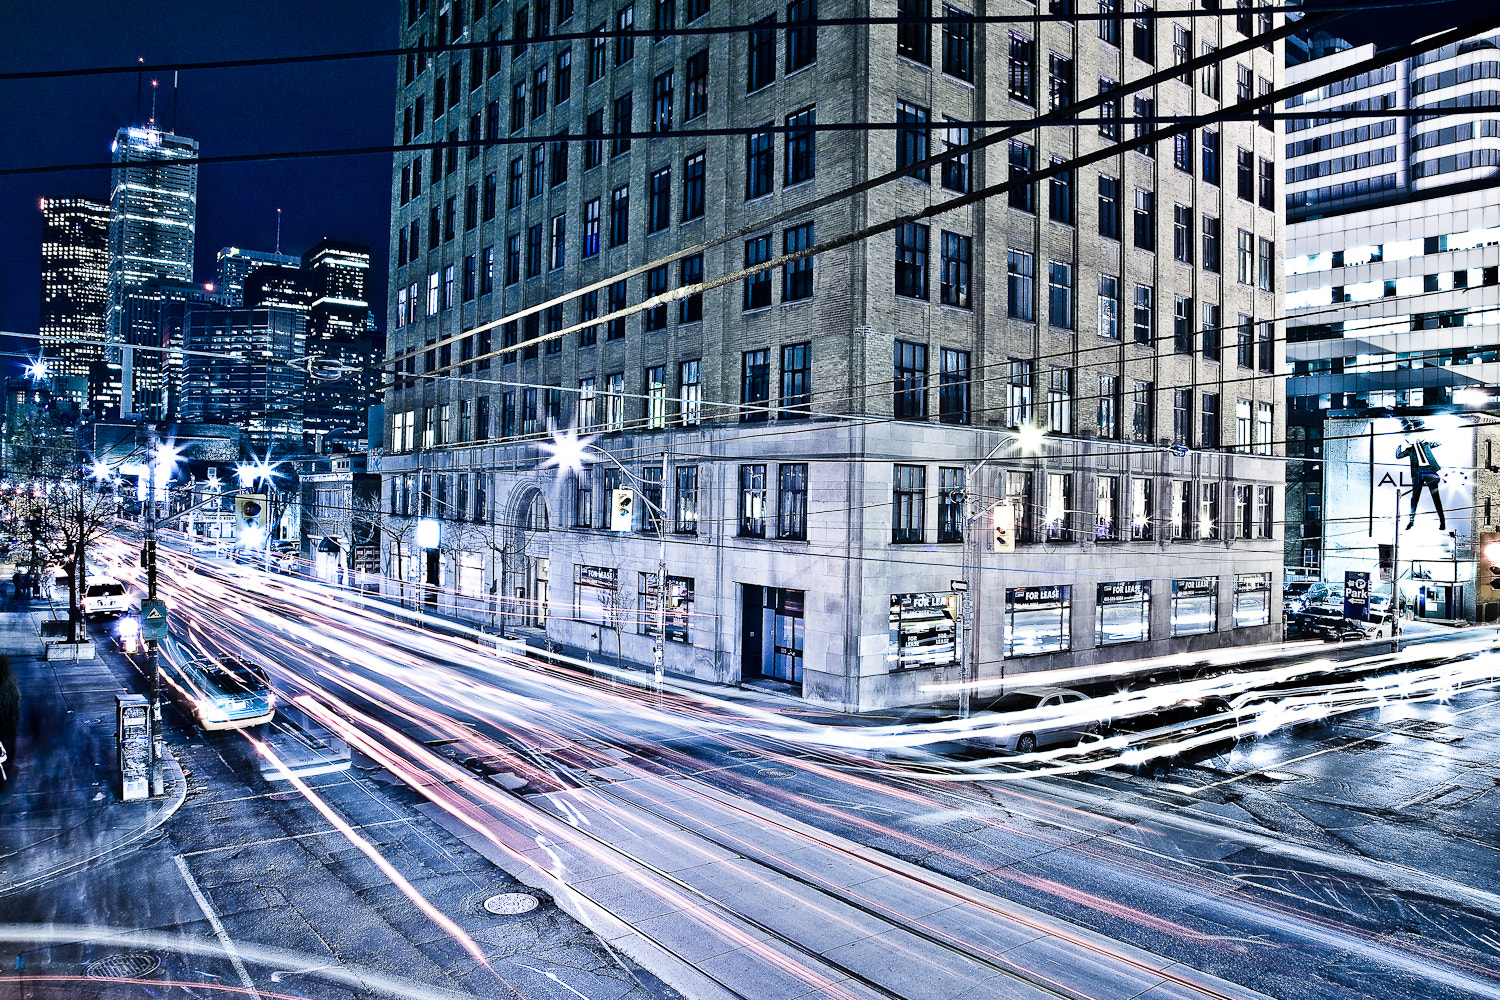 Photograph City life a blur by Masoud  on 500px